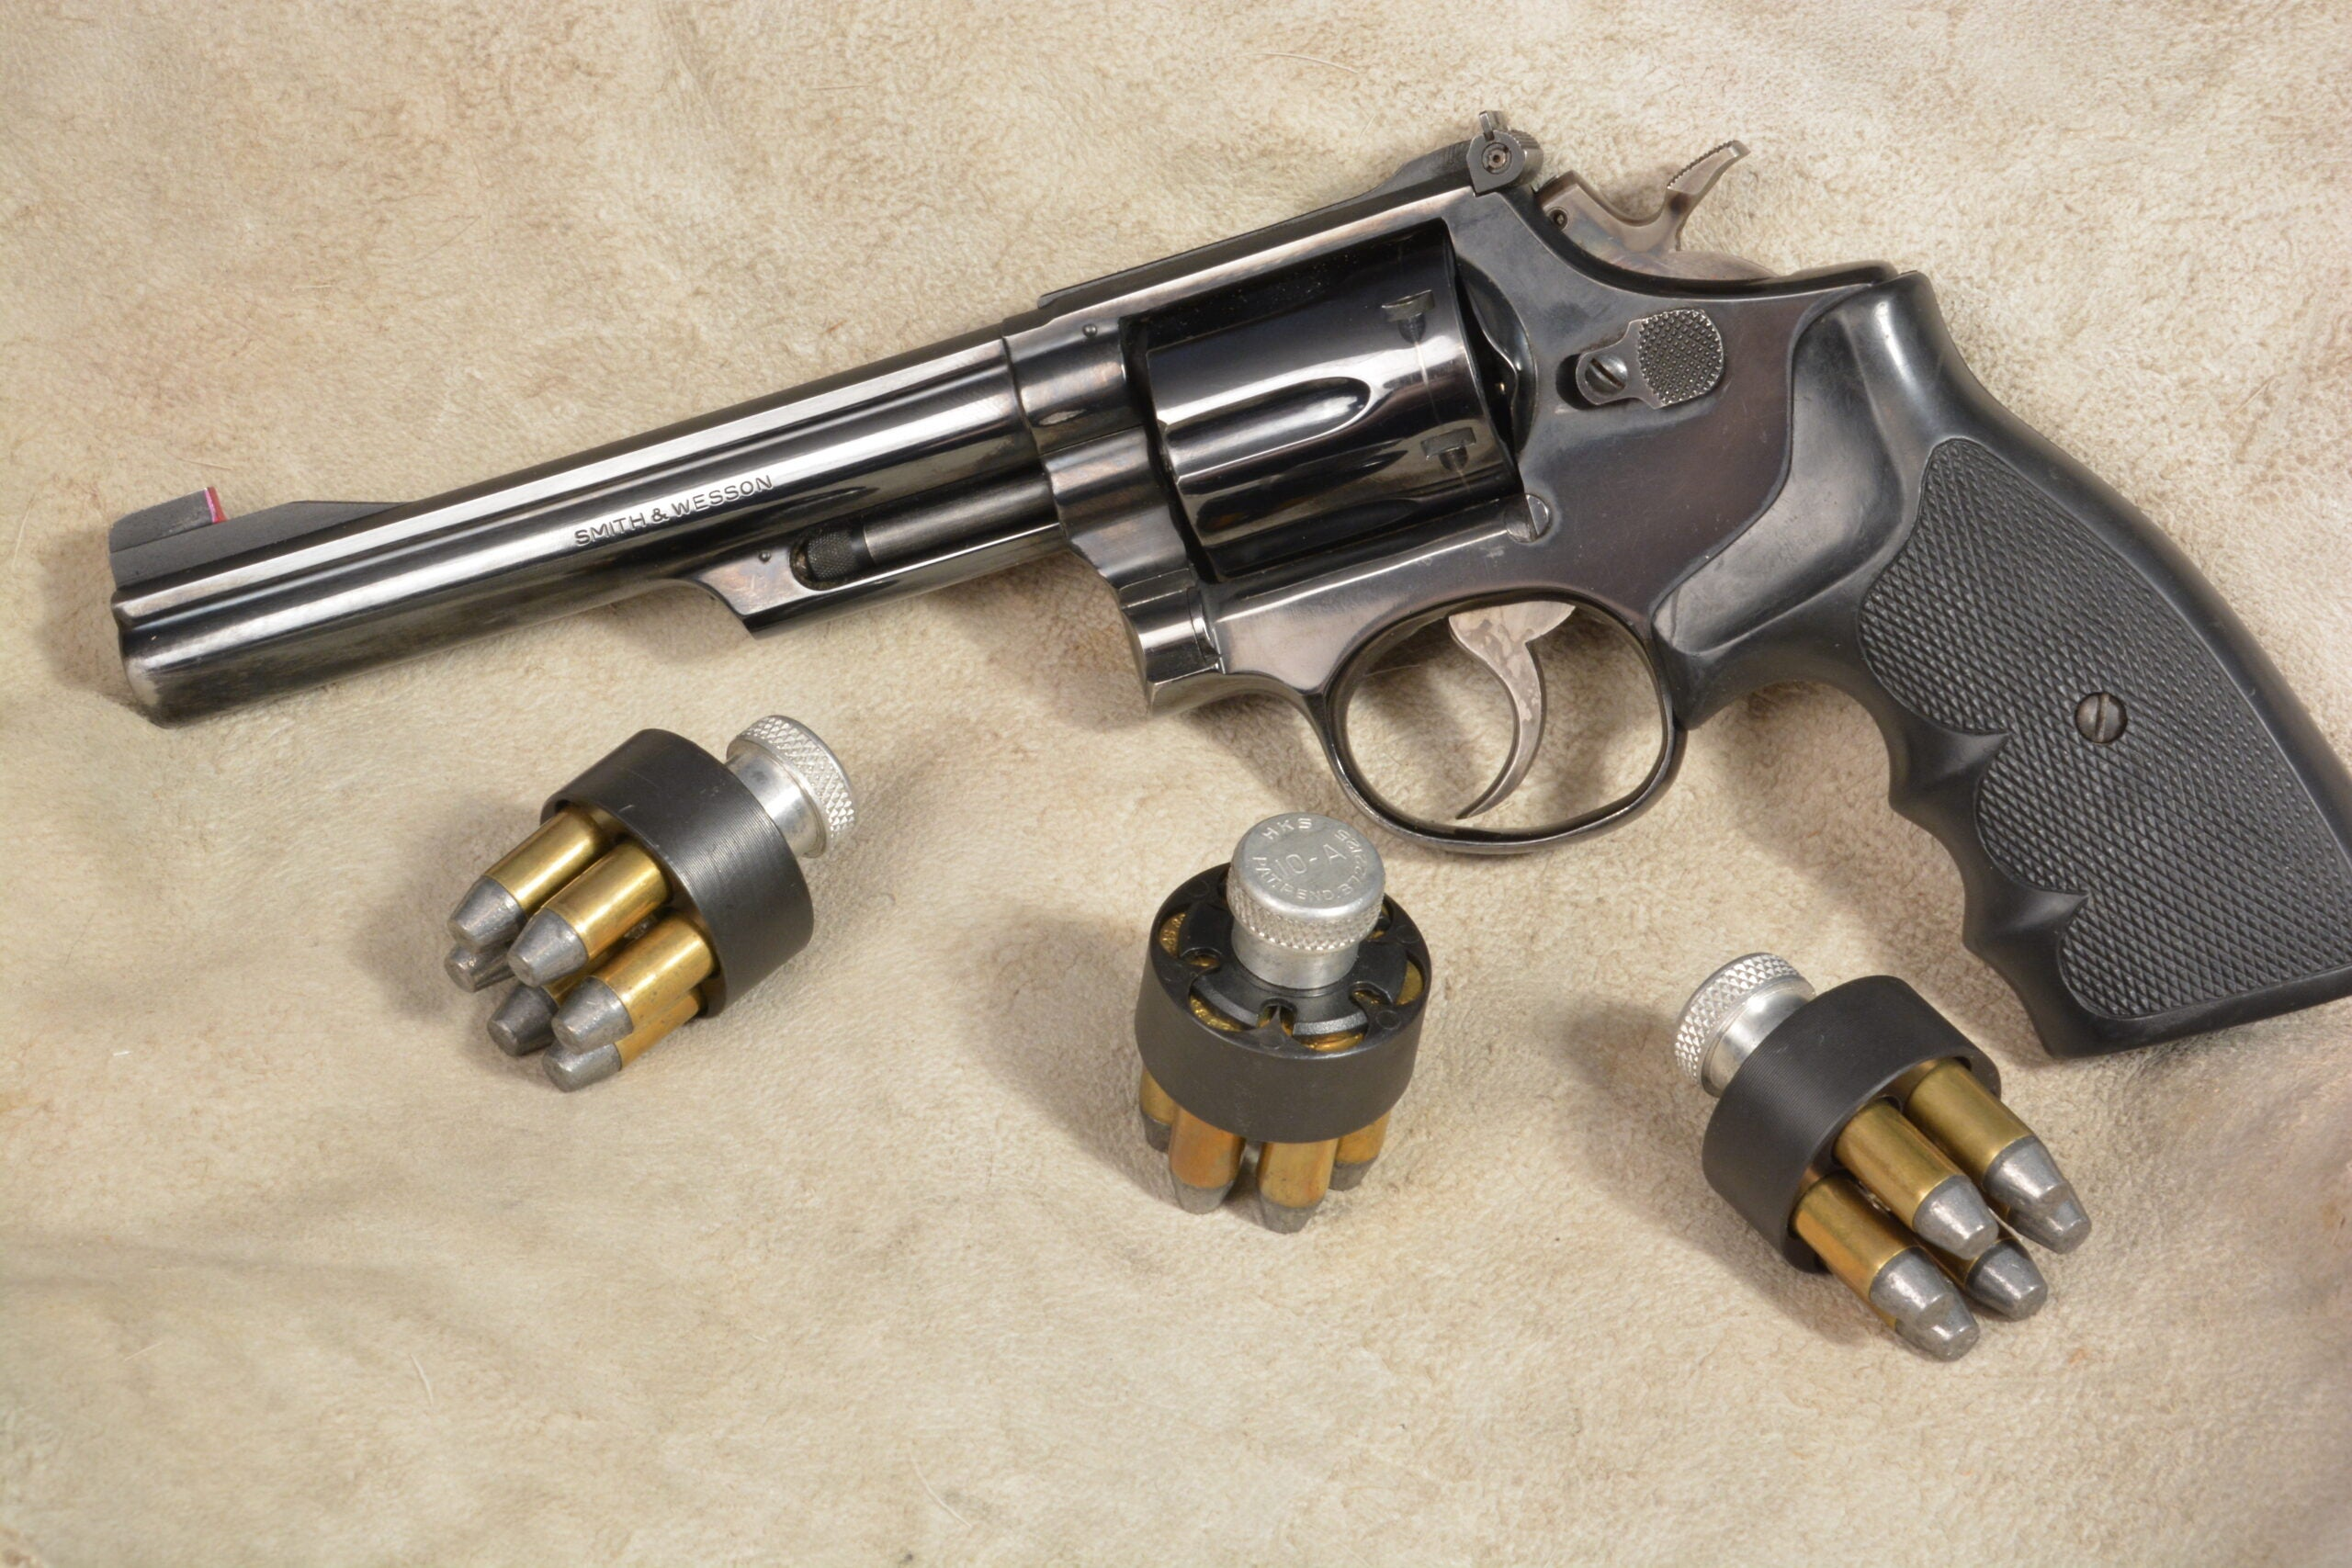 Model 19 is our pick for best revolver.